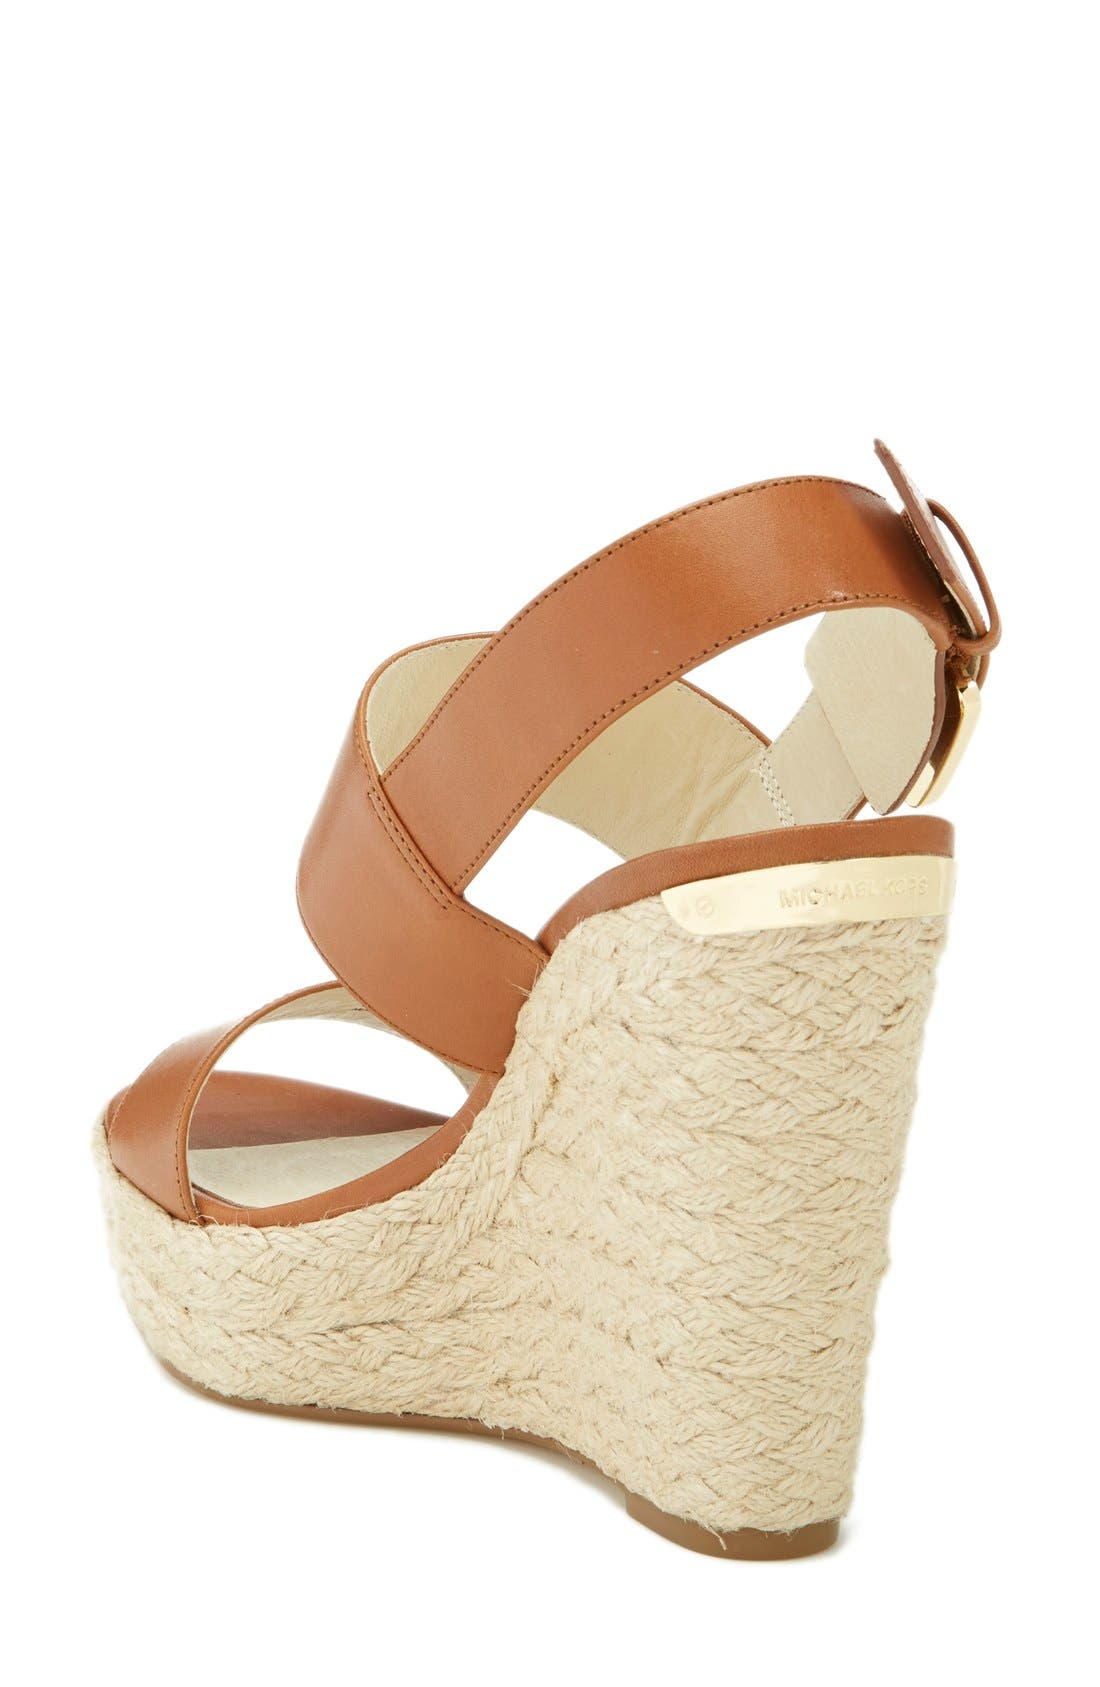 Alternate Image 2  - MICHAEL Michael Kors 'Posey' Espadrille Wedge Sandal (Women)